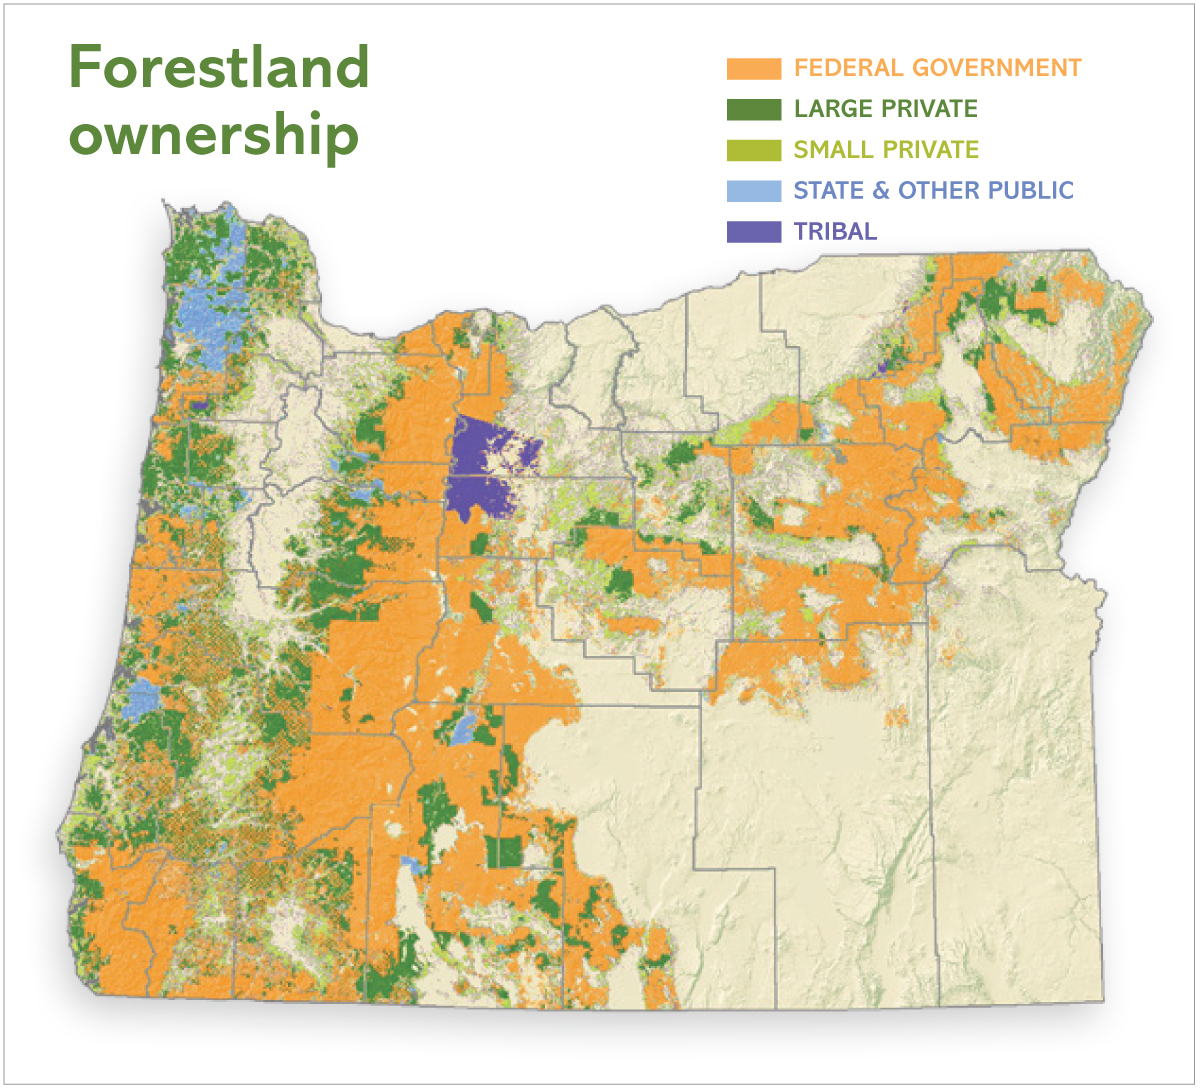 Forestland ownership